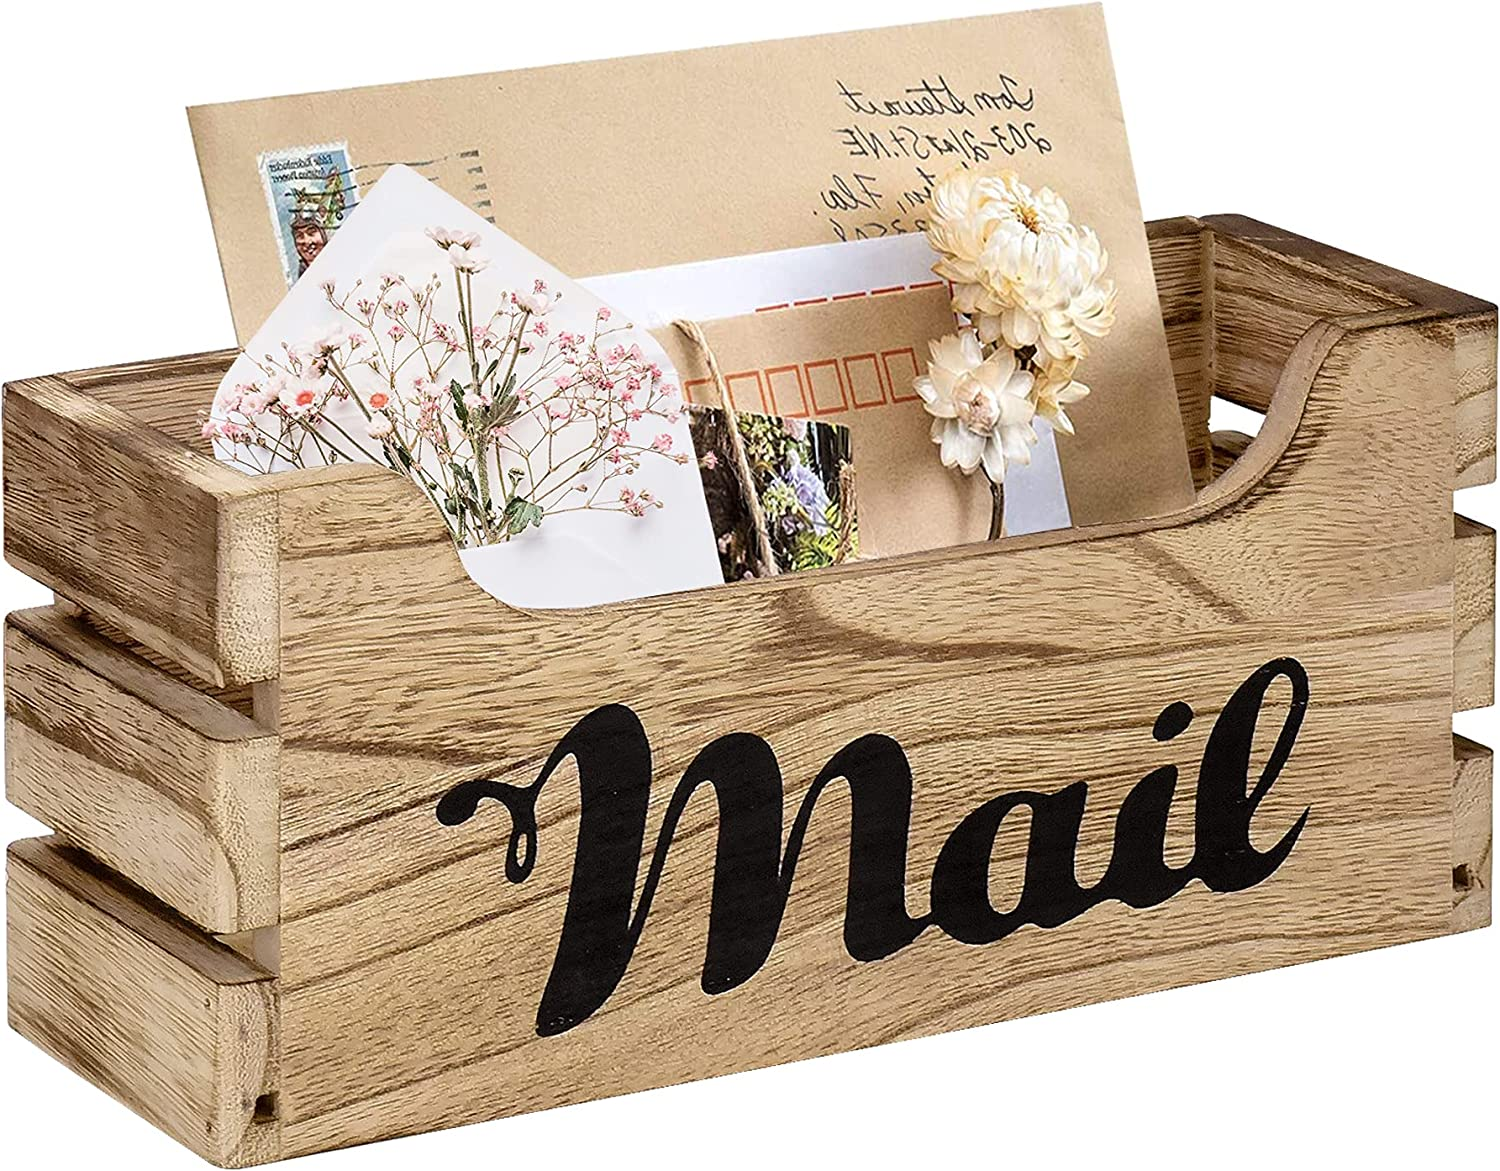 Farmhouse Decor Rustic Mail Holder Box, Rustic Wood Tabletop Mail Organizer with Hanging Hardware, Decorative Wooden Mail Holder Wall Mounted for Office, Home, Farm (Rustic Brown)